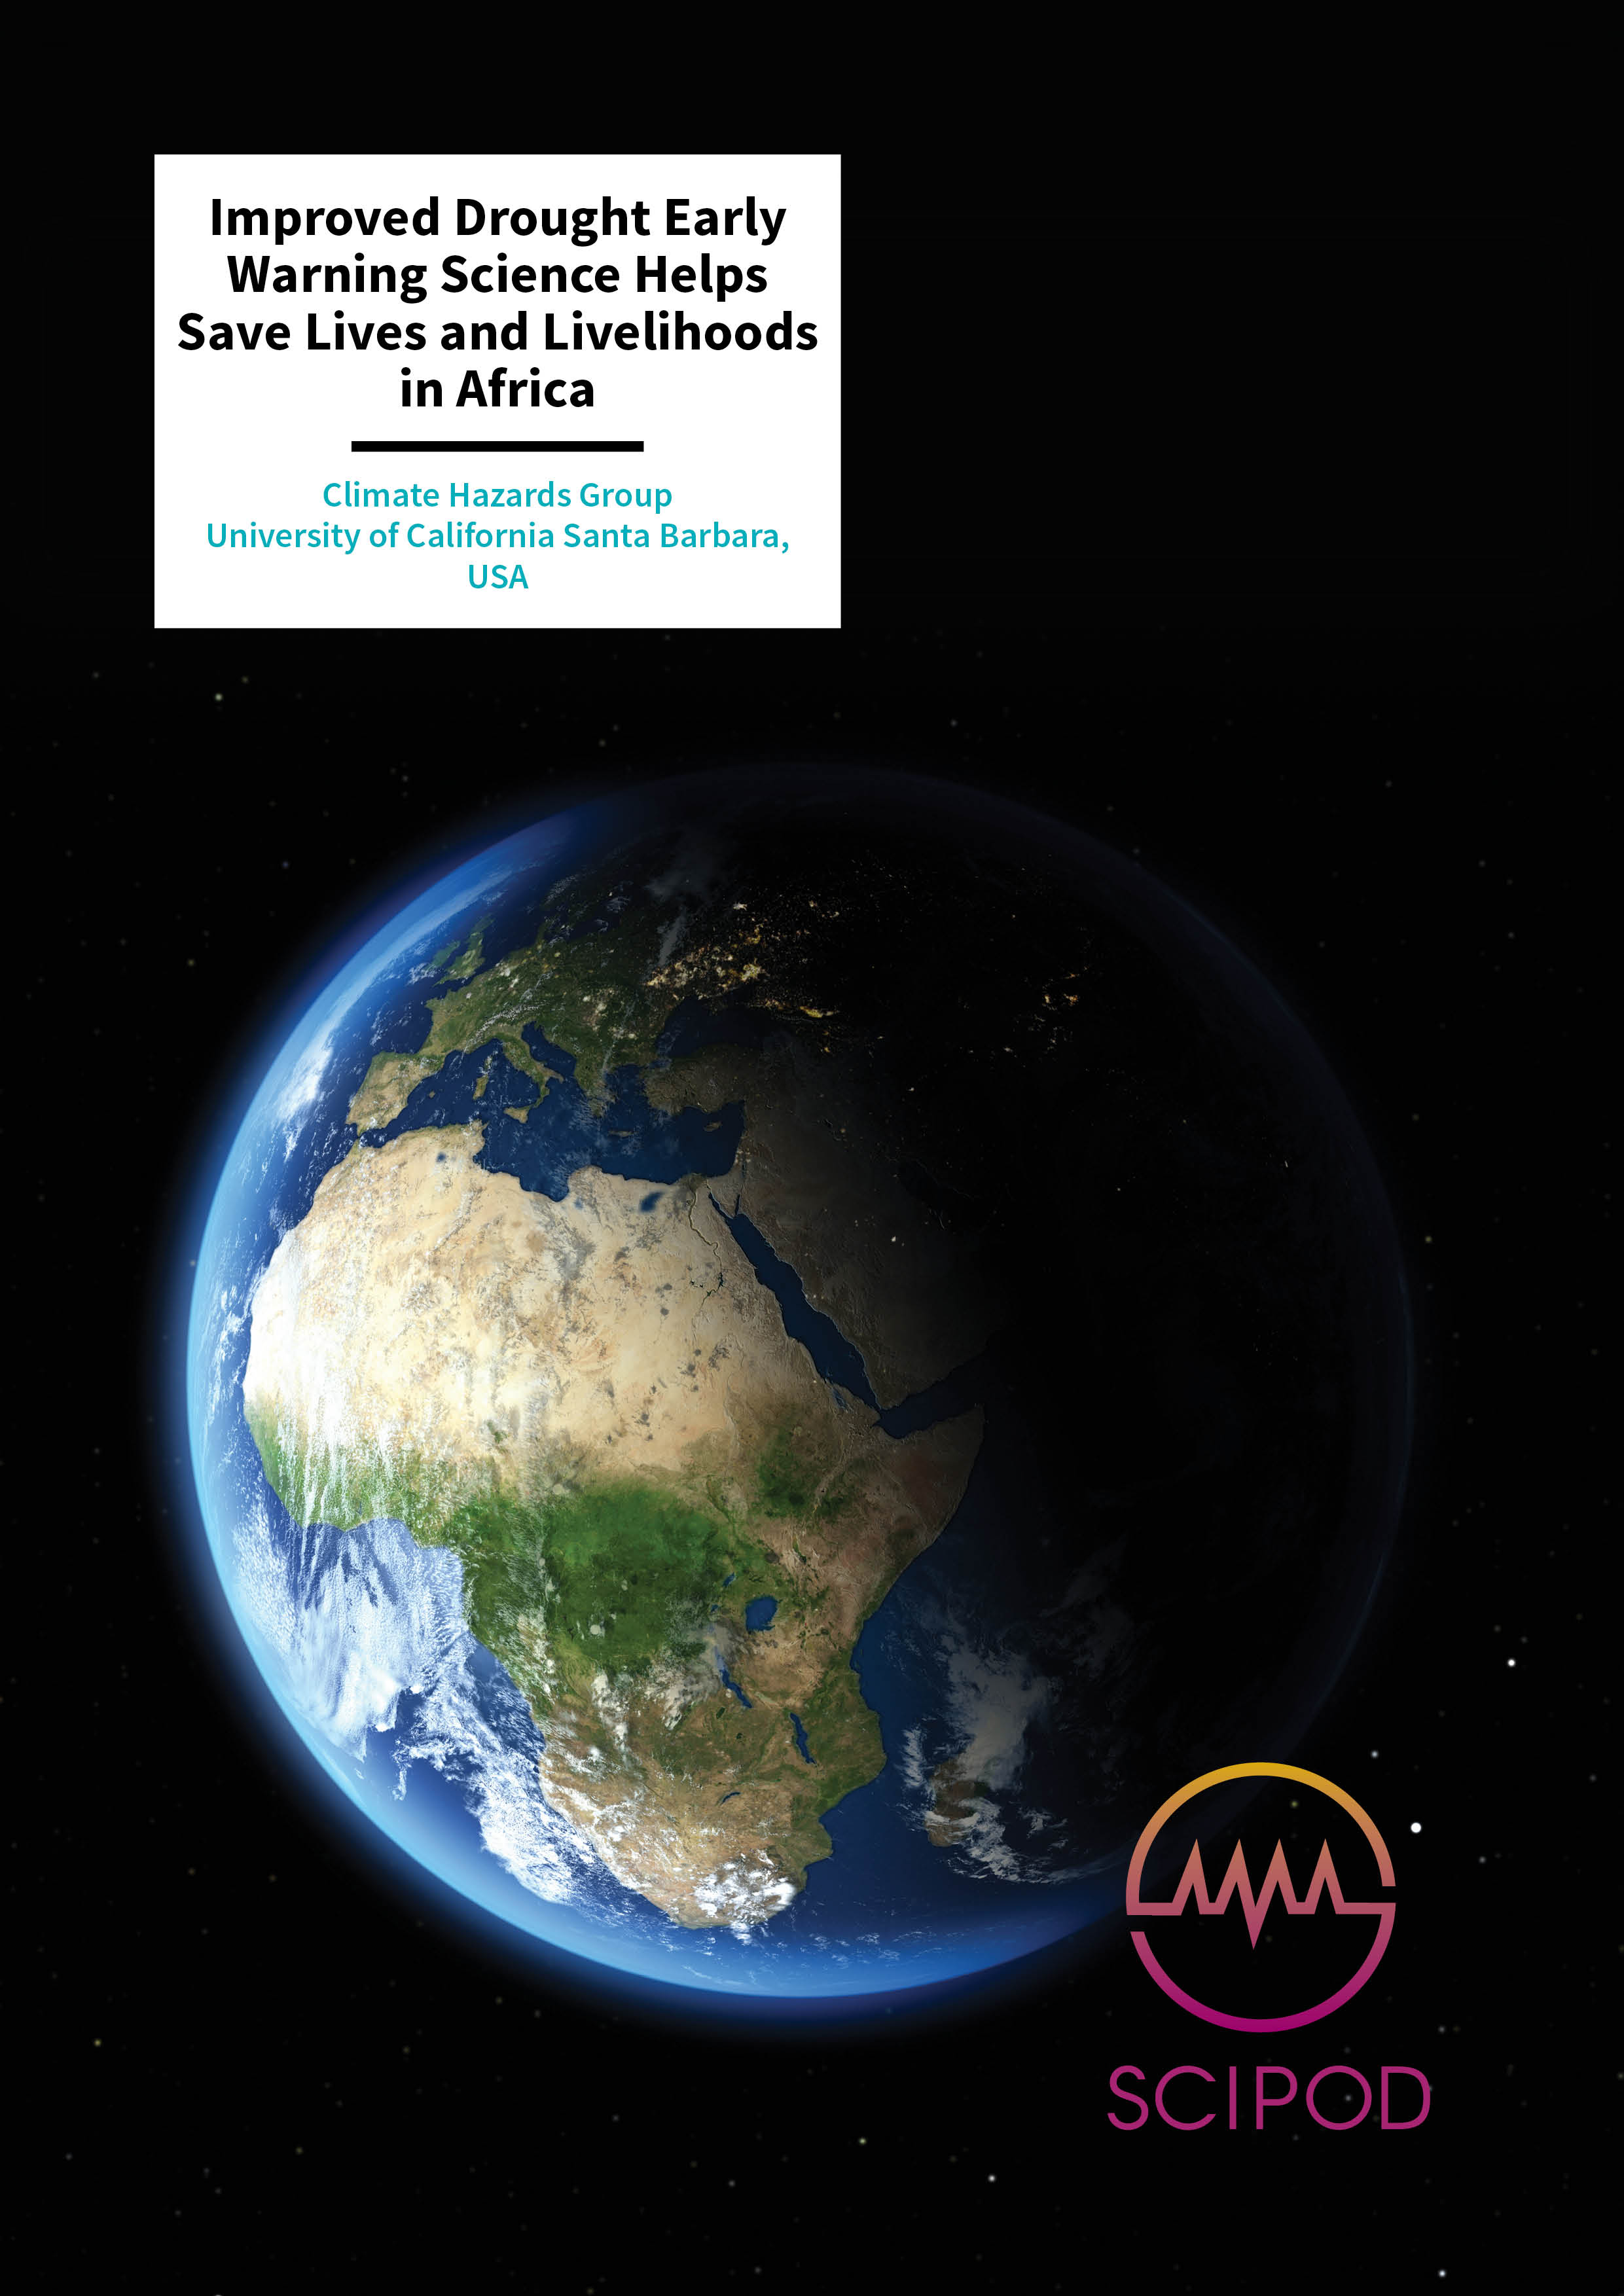 Improved Drought Early Warning Science Helps Save Lives and Livelihoods in Africa – Climate Hazards Group, University of California Santa Barbara